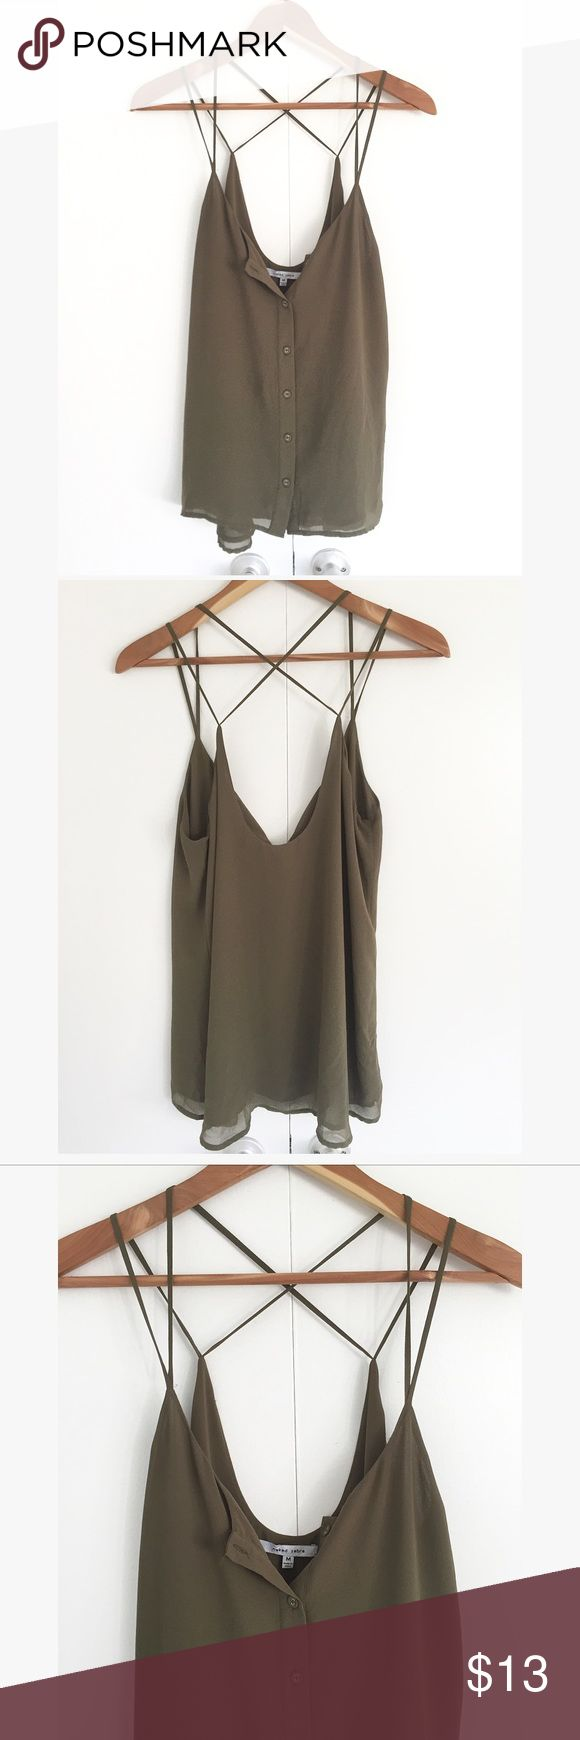 Olive green Strappy top Size M • button down front • polyester Tops Blouses